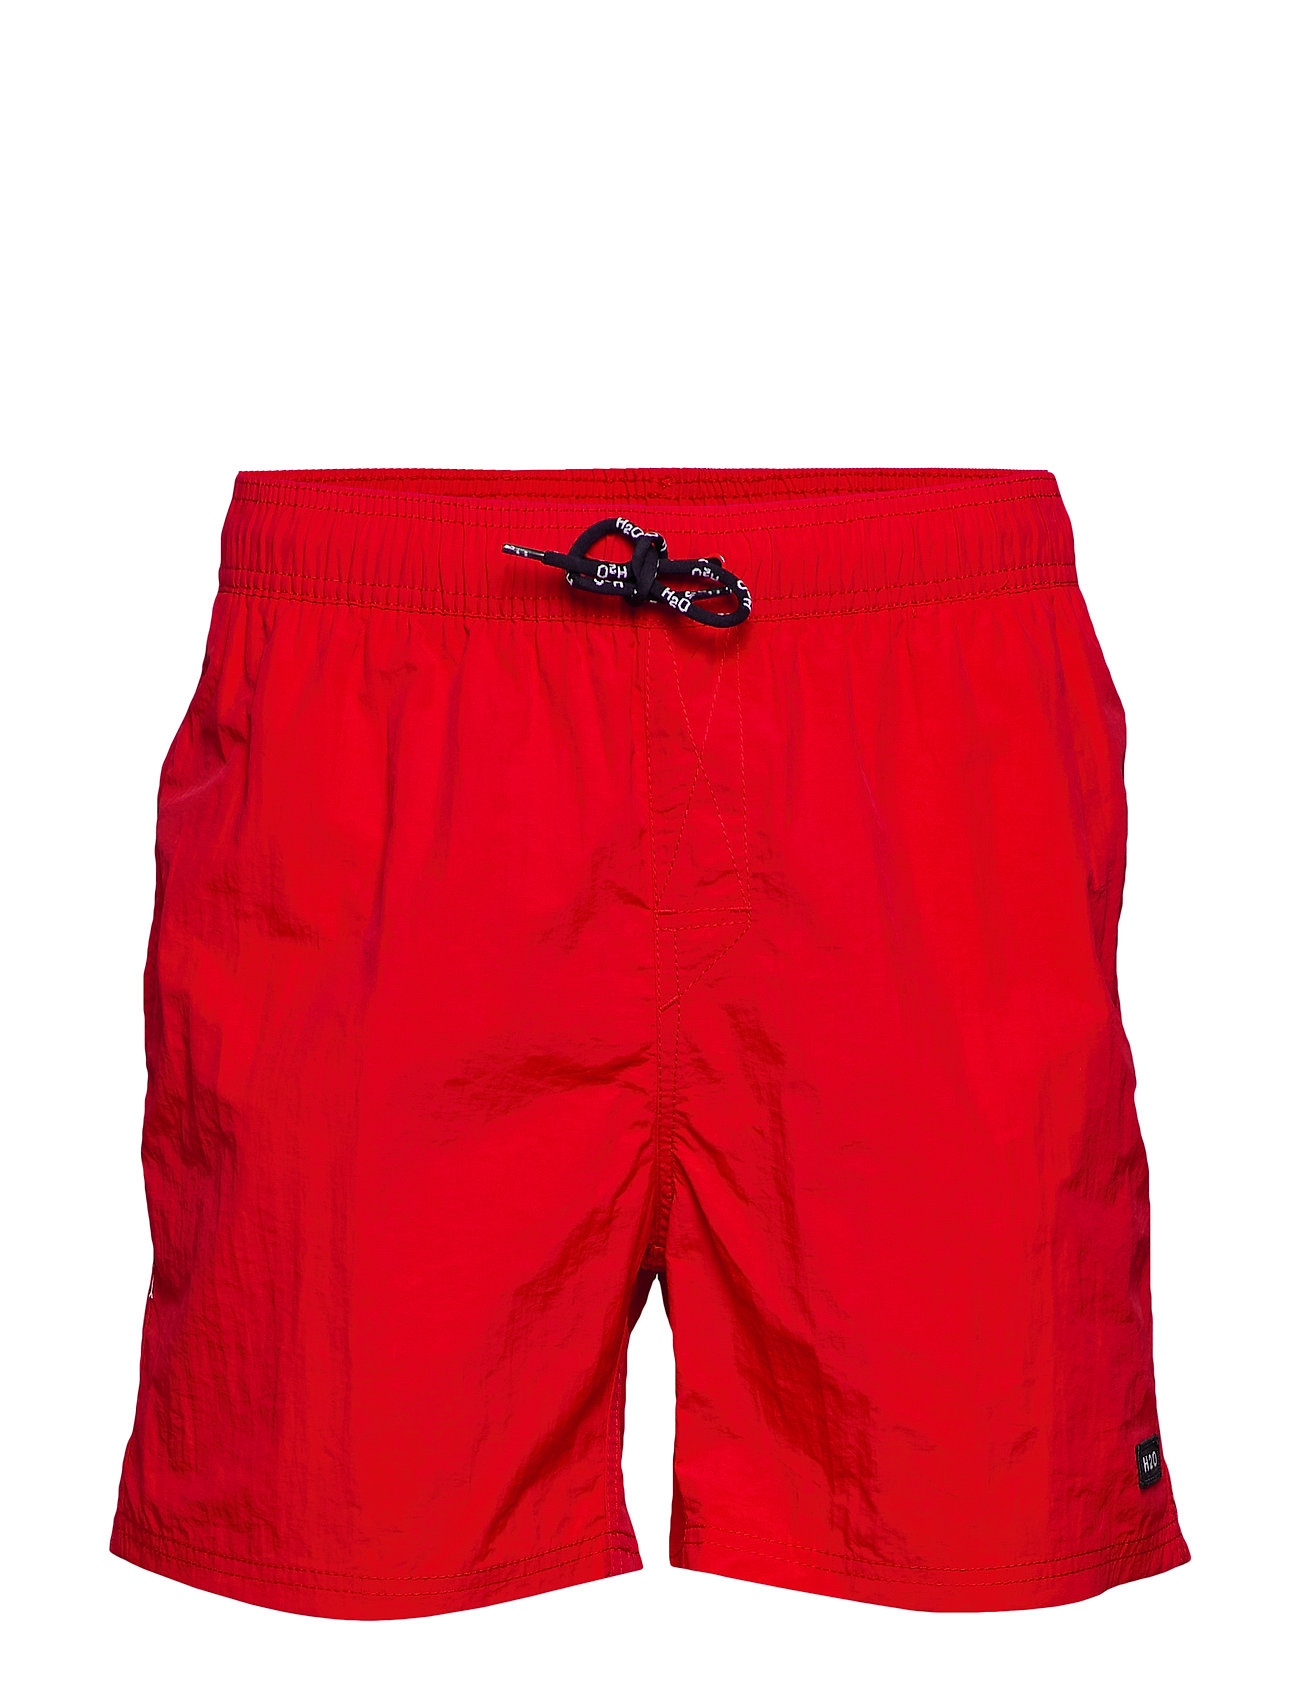 Image of Leisure Swim Shorts Badeshorts Rød H2O (3409851319)